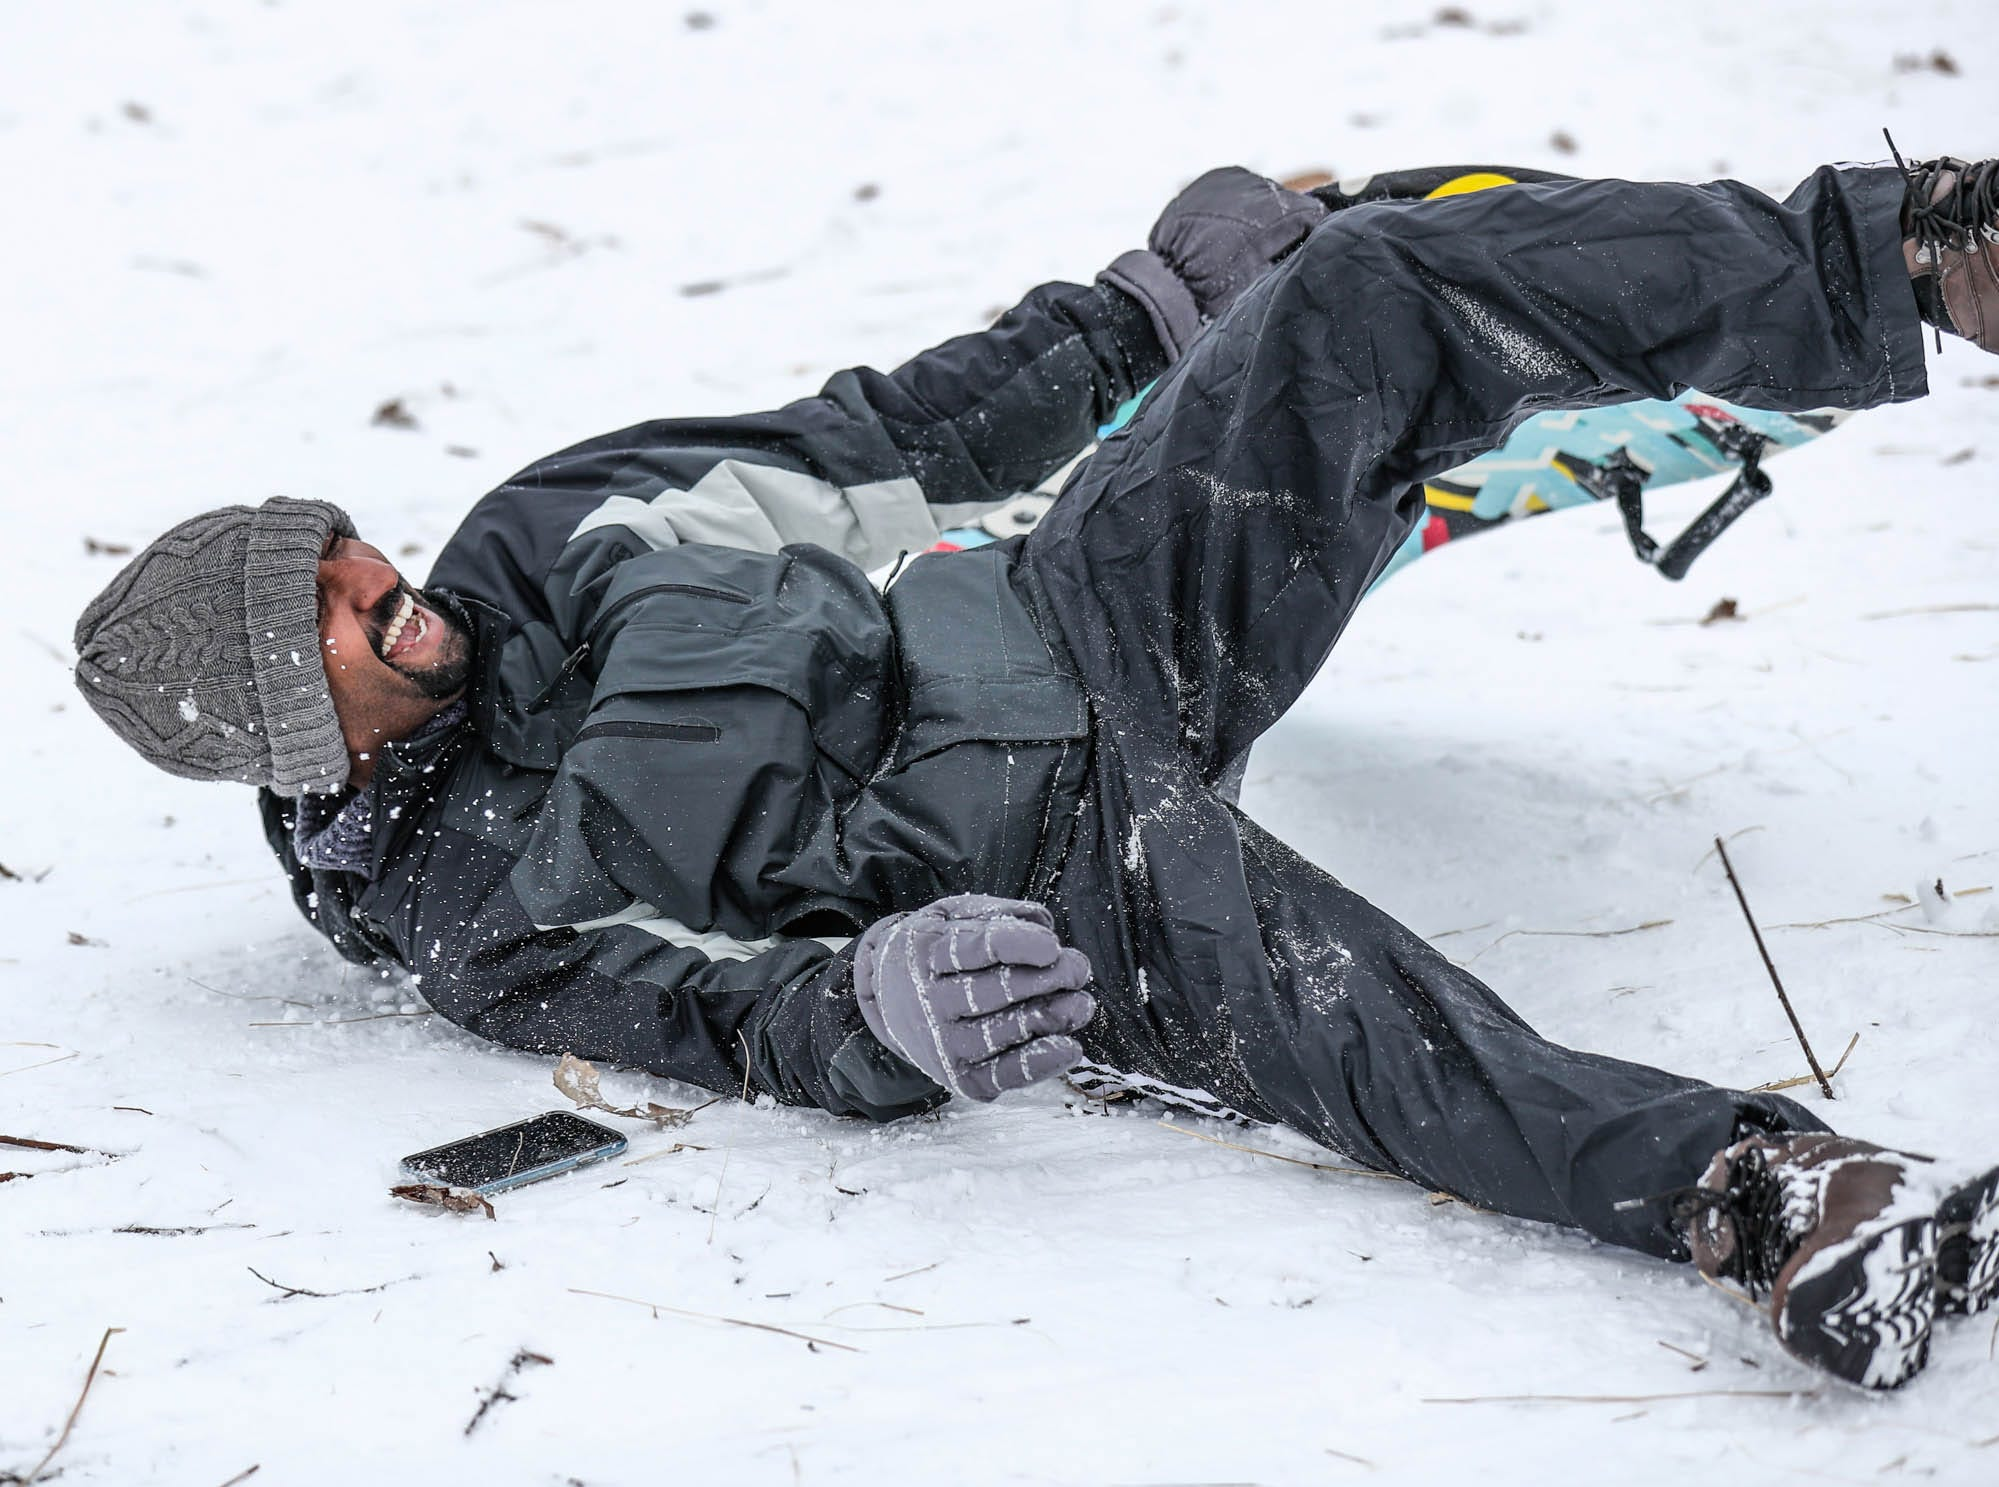 Kesh Patel crashes while zooming down the sledding hill at West Park in Carmel Ind. on Sunday, Jan. 13, 2019.